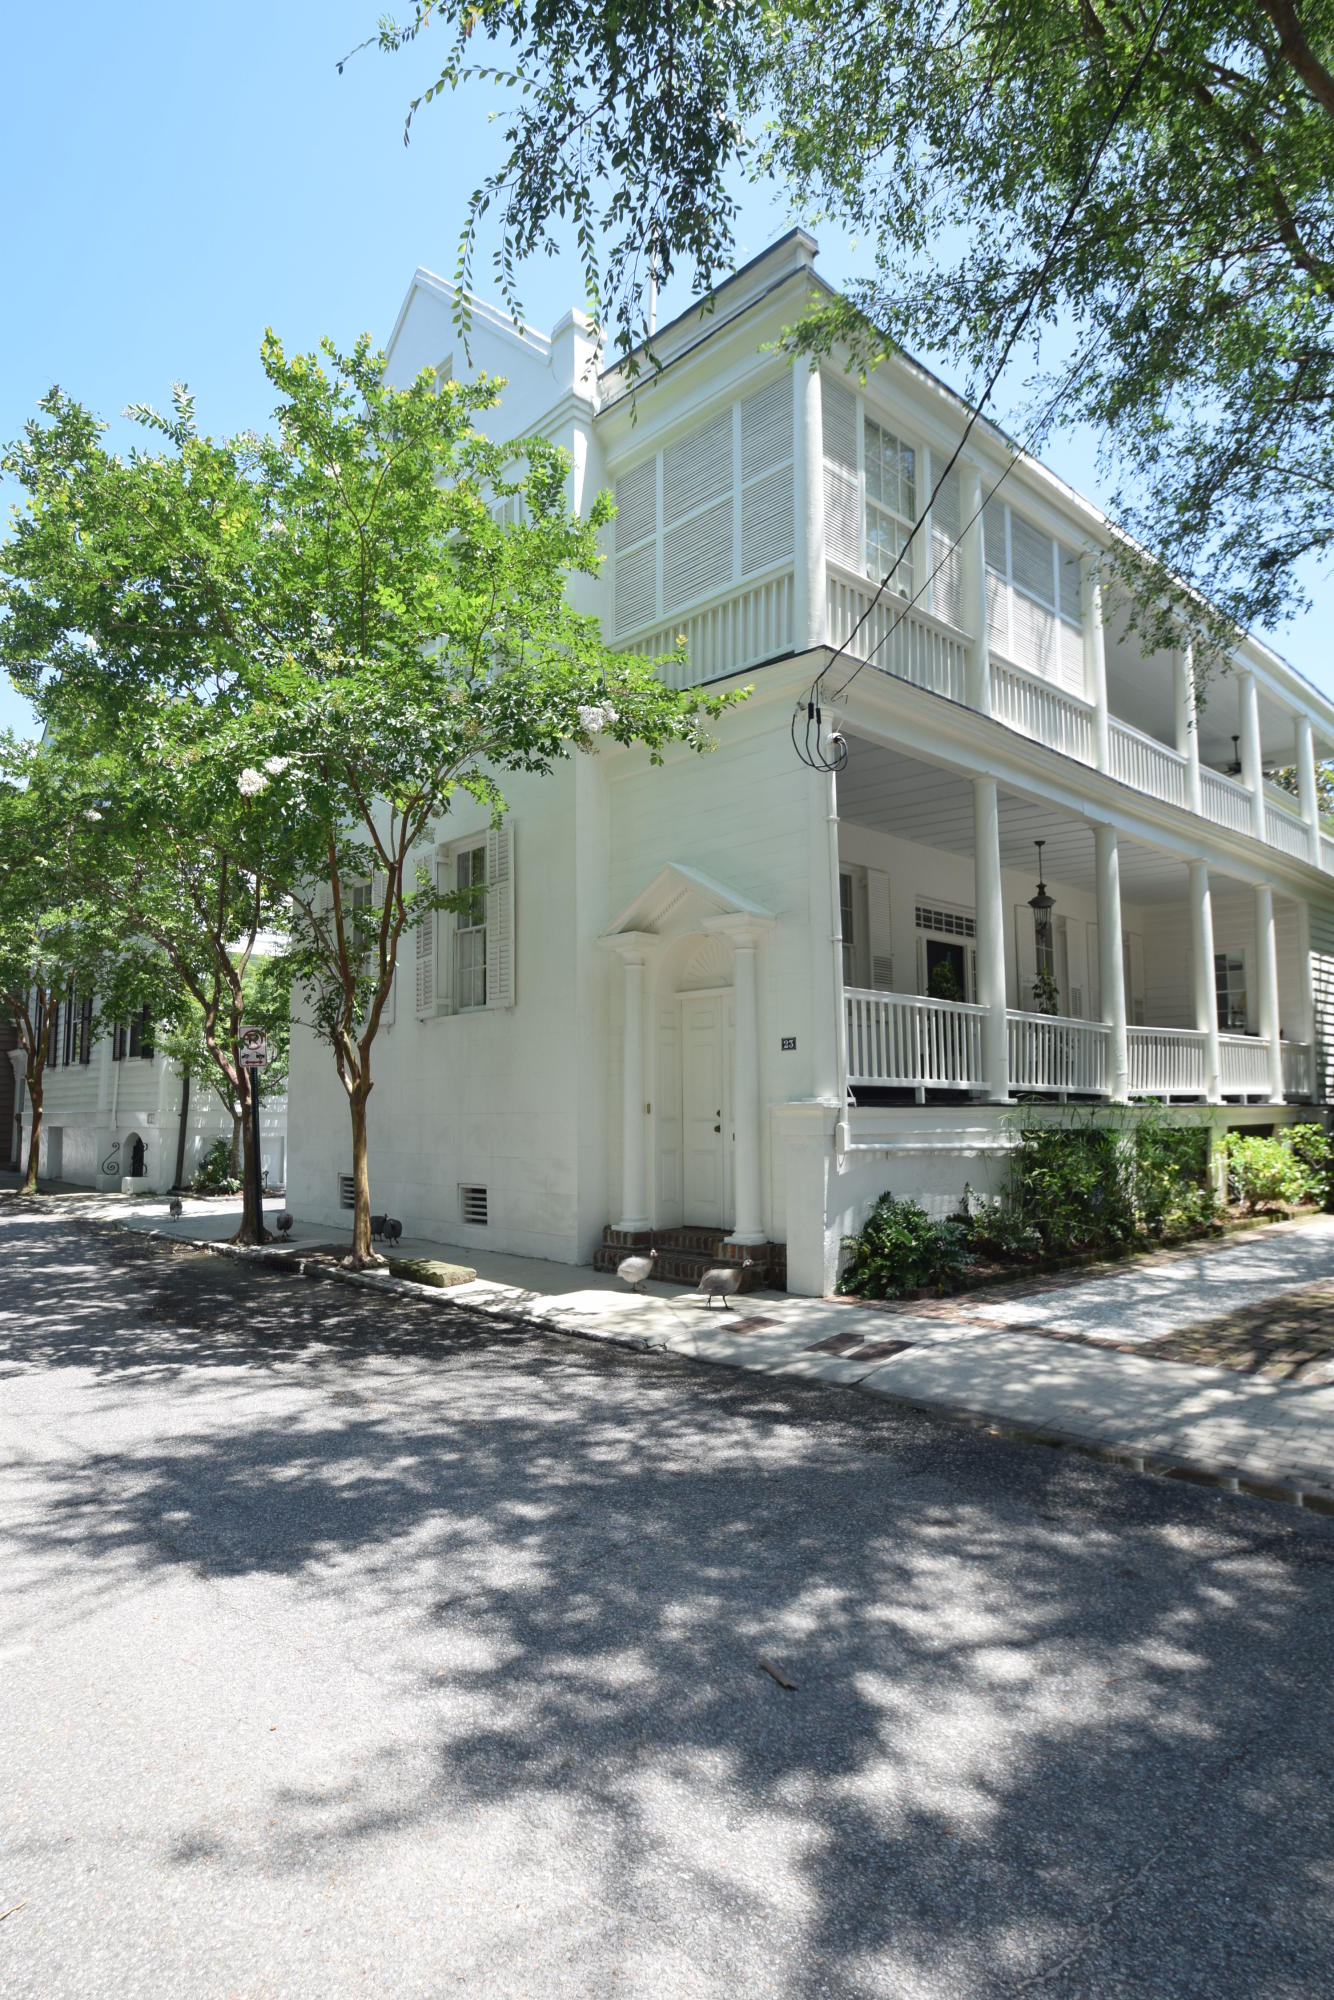 Home for sale 23 Lamboll Street, South Of Broad, Downtown Charleston, SC